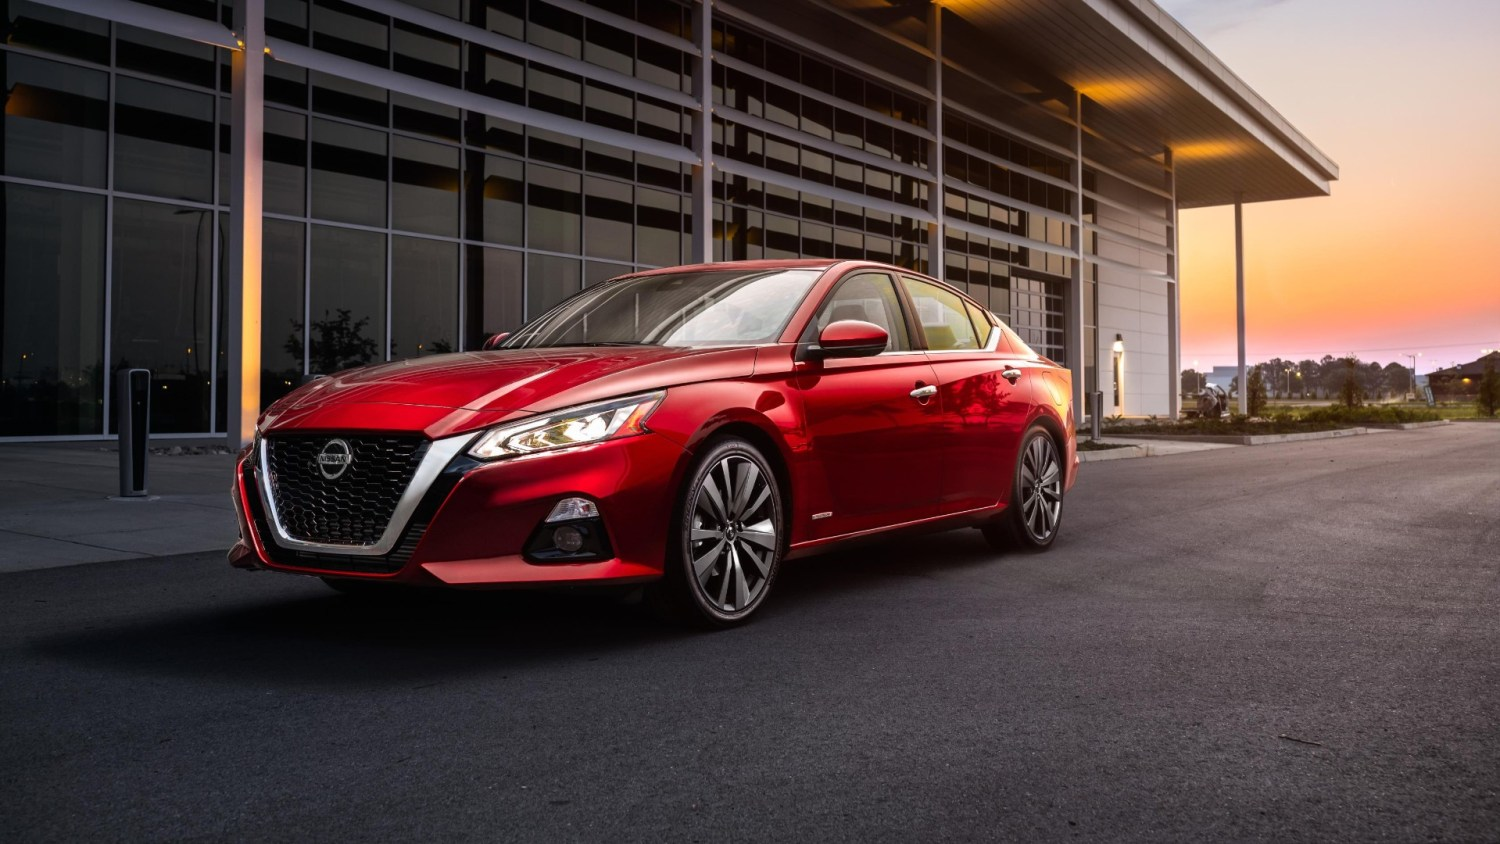 Sedans are more popular than we thought, Nissan finds